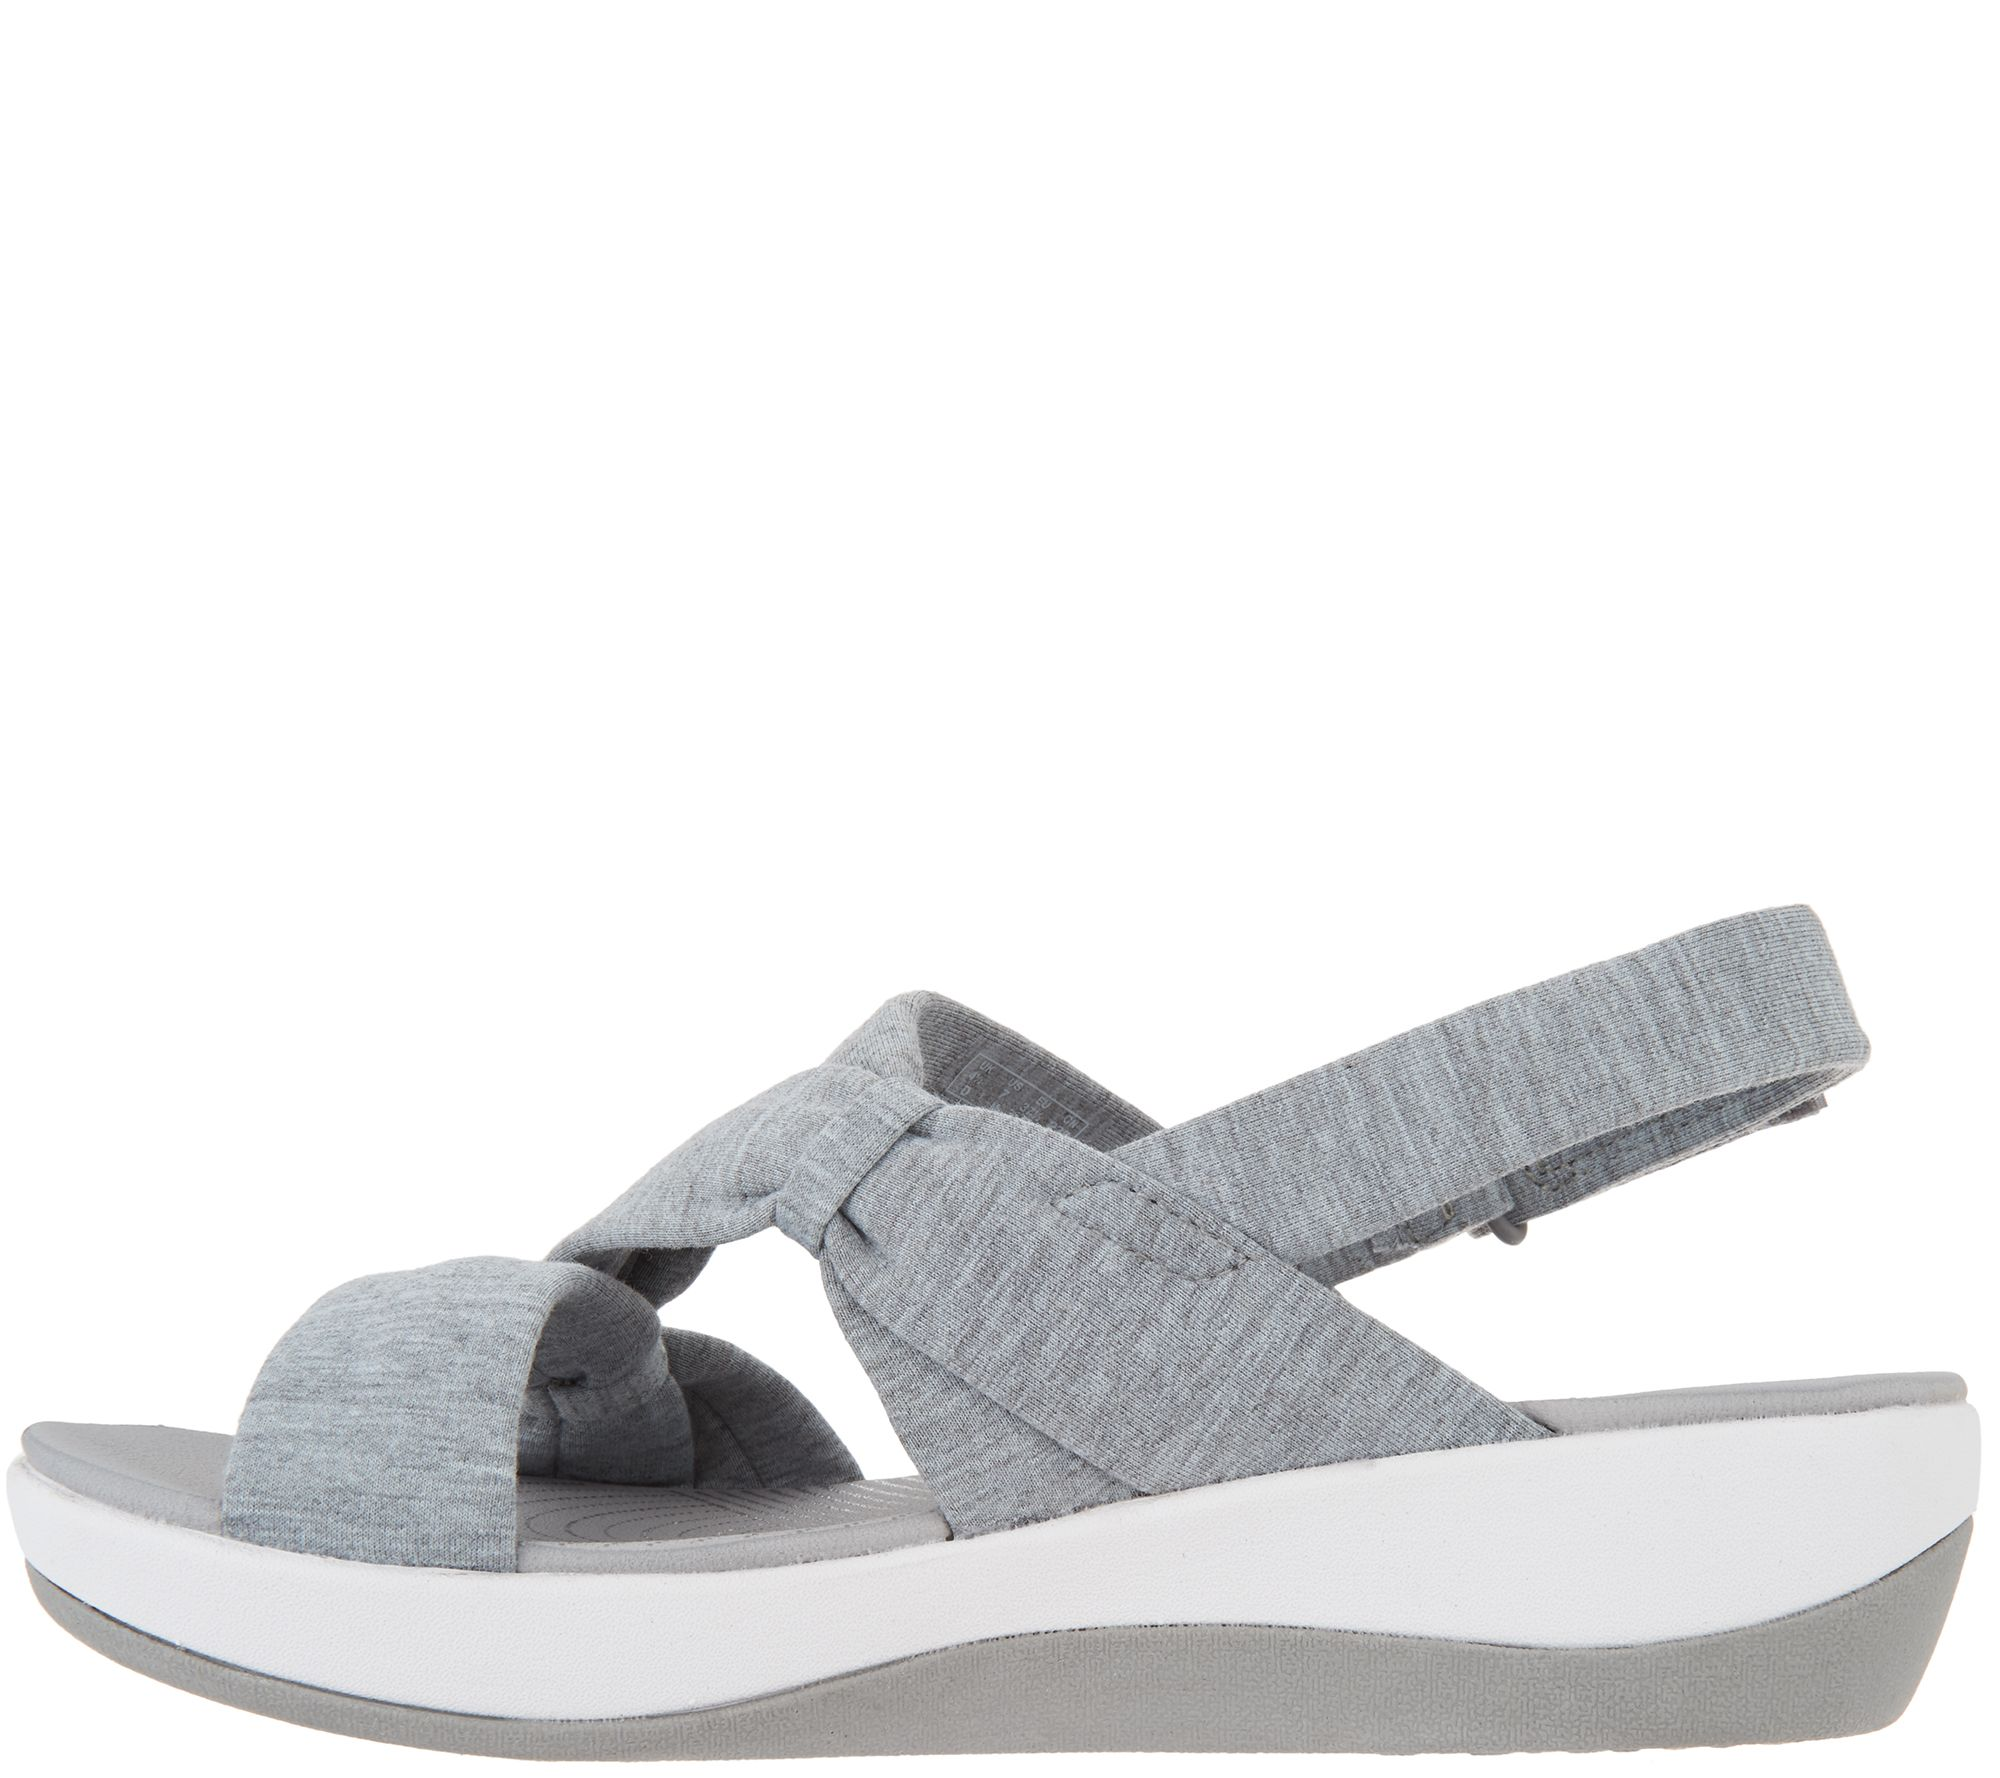 Cloudsteppers By Clarks Sport Sandals Arla Primrose